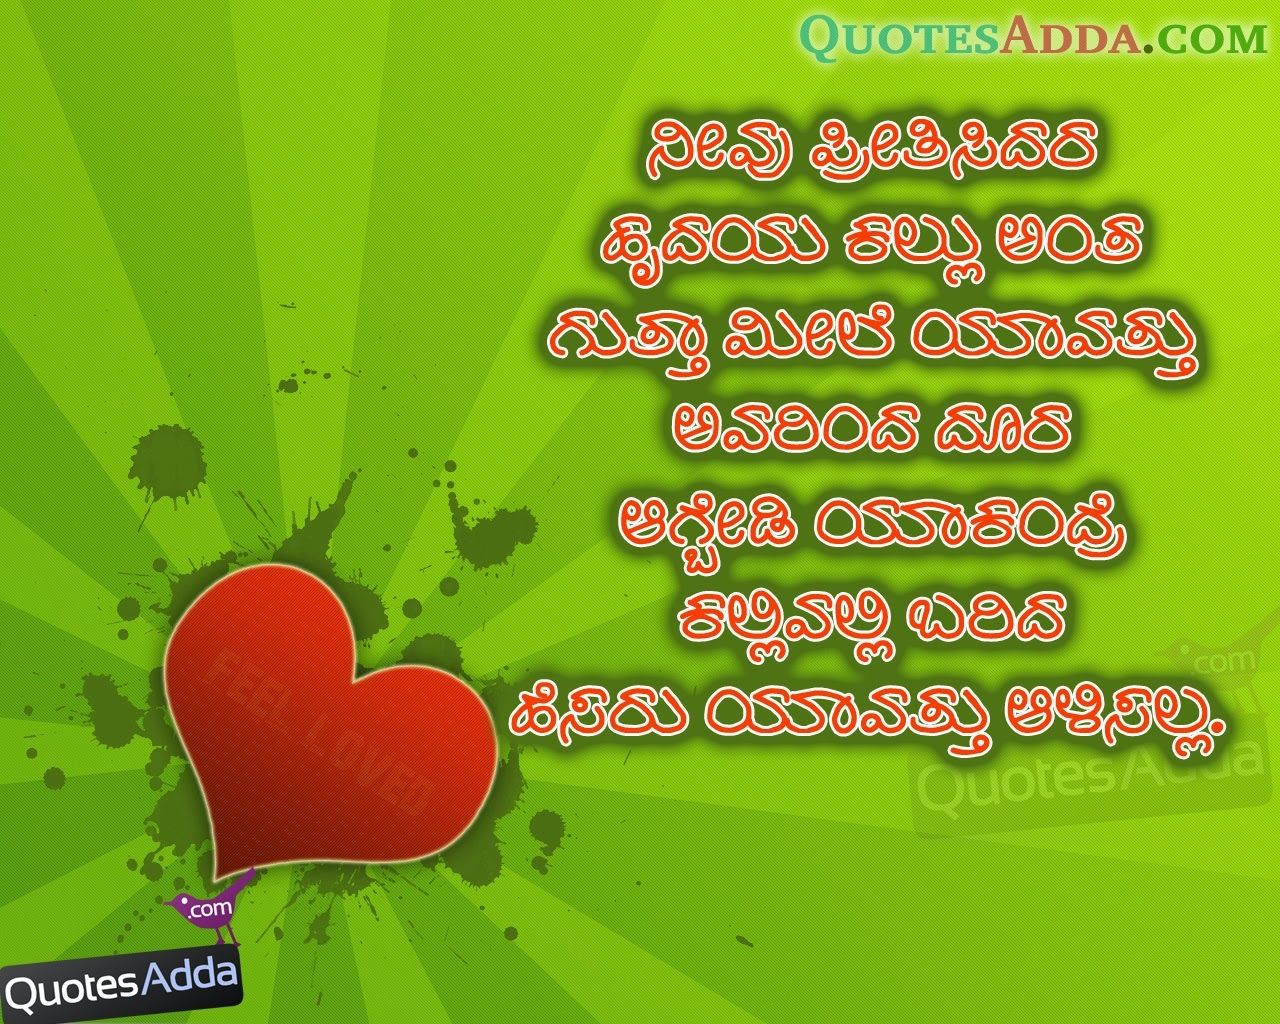 Wallpaper Of Love Kannada Wallpaper Of Love Kannada Hd Download Download Wallpaper Of Love Kann Love Quotes With Images Love Failure Quotes Failure Quotes